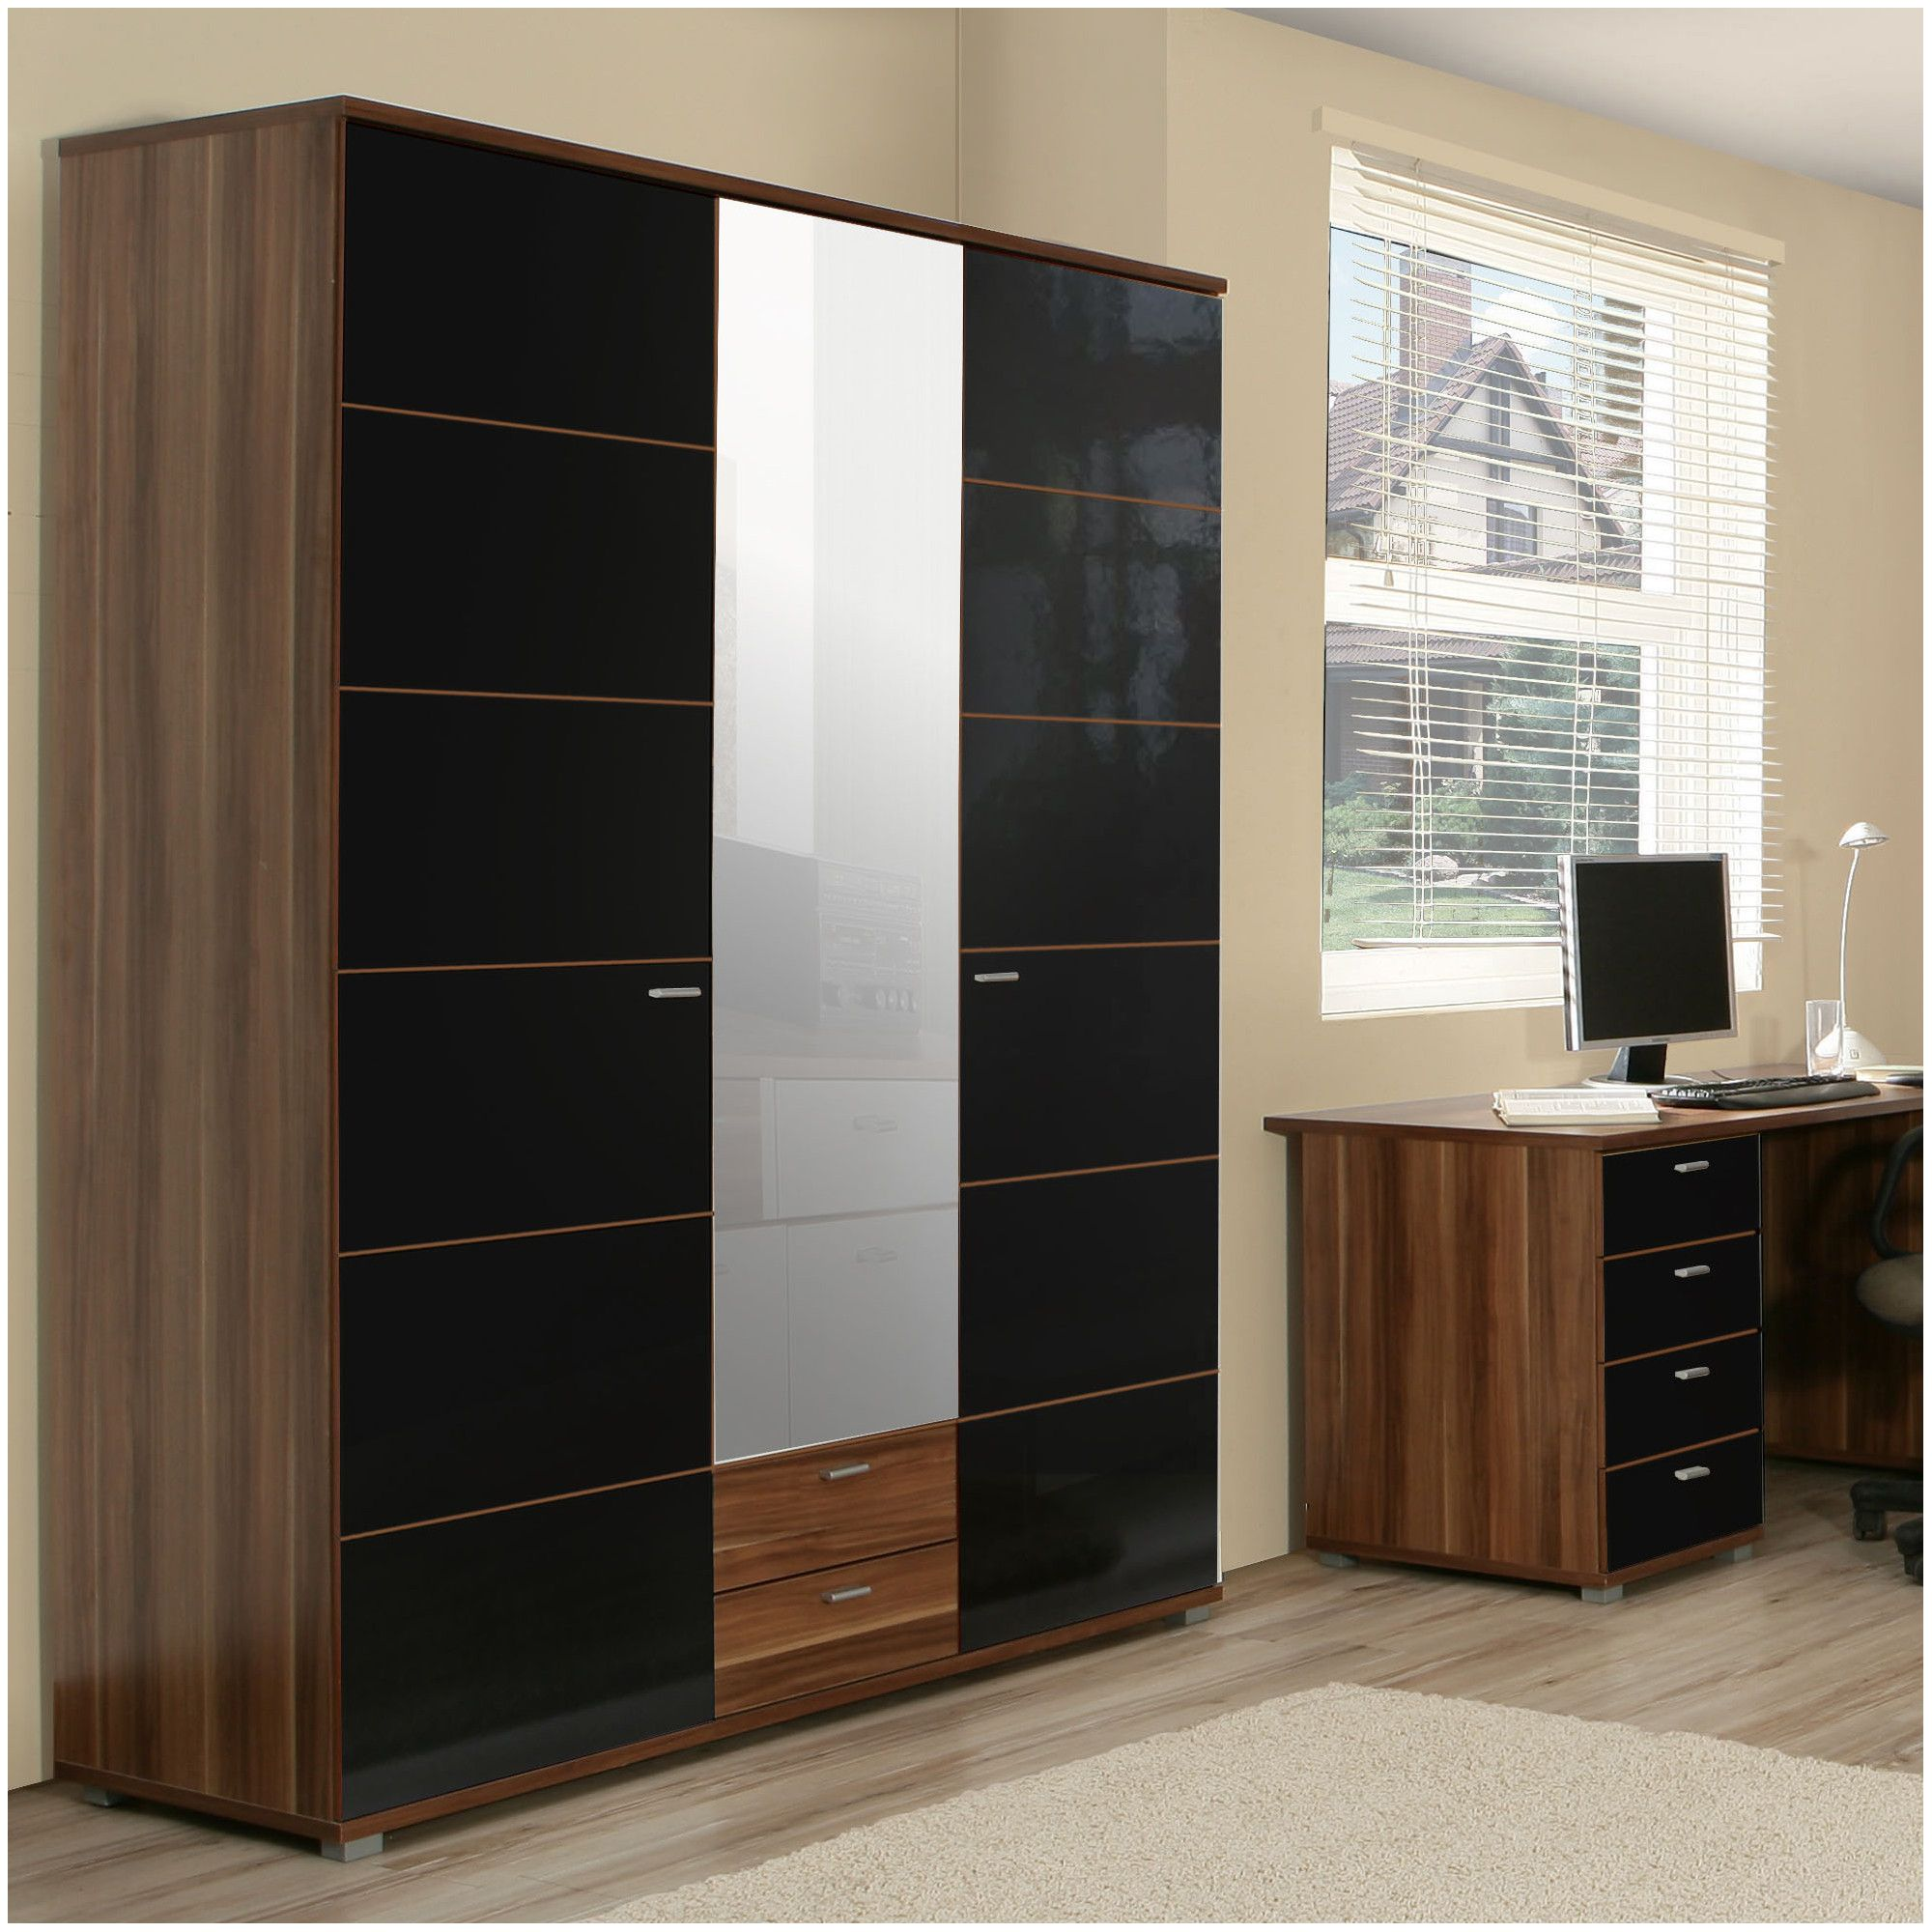 Ideal Furniture Anemone Triple Wardrobe with Mirror - Walnut with Black Gloss at Tesco Direct